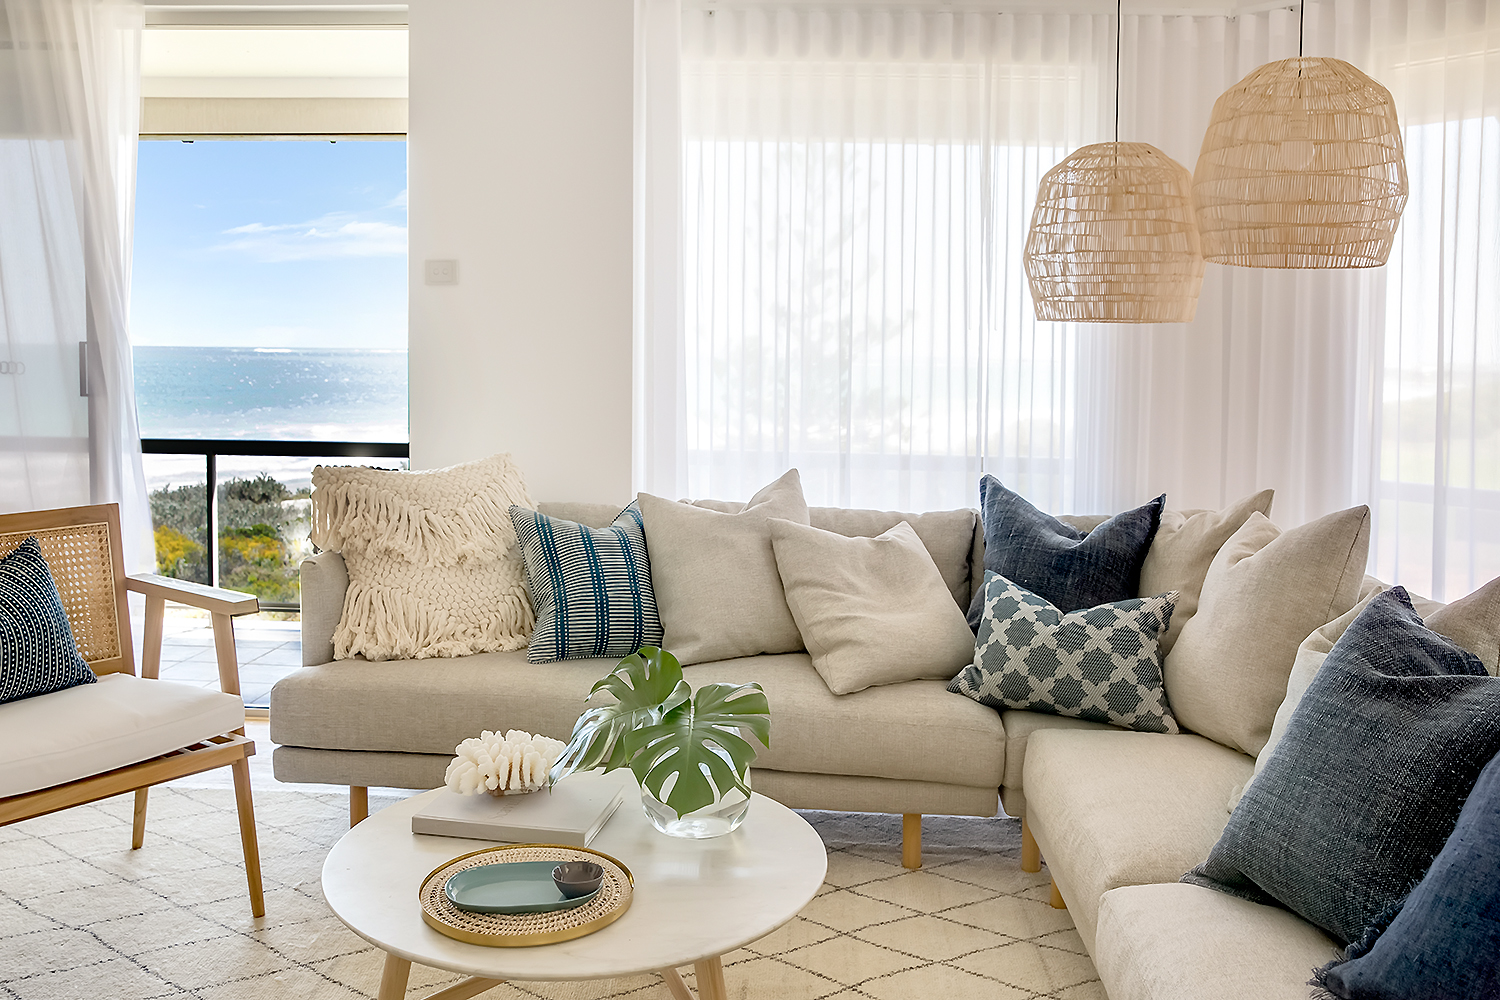 The view when seated at the office desk. With the plantation shutters open, you are able to take in the panoramic ocean views while working in the office.